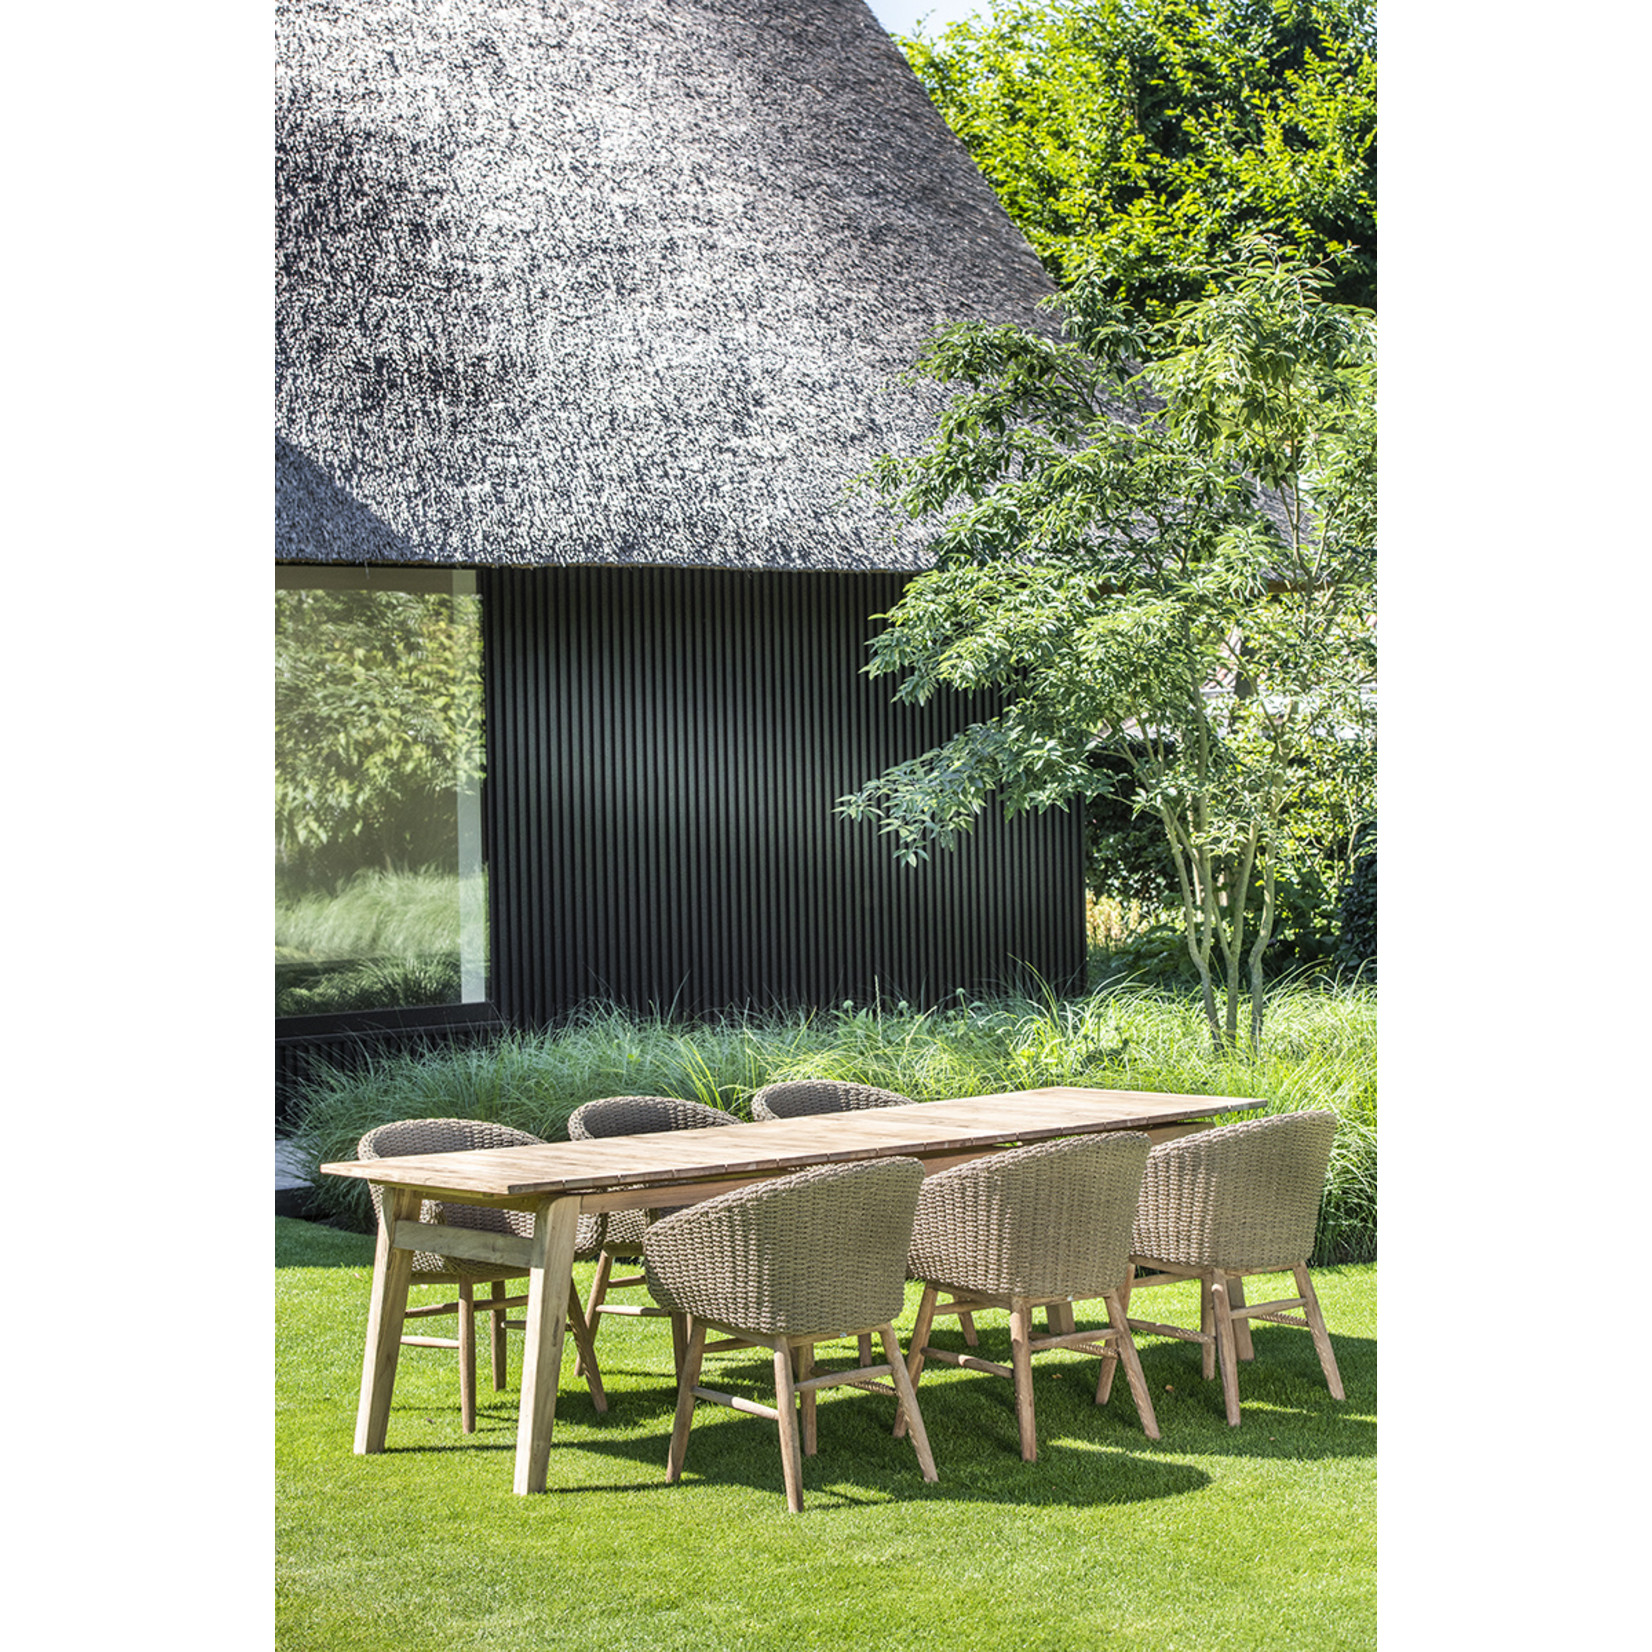 Gommaire Armchair Charly | Reclaimed Teak Natural Grey / PE Wicker Antique Weed